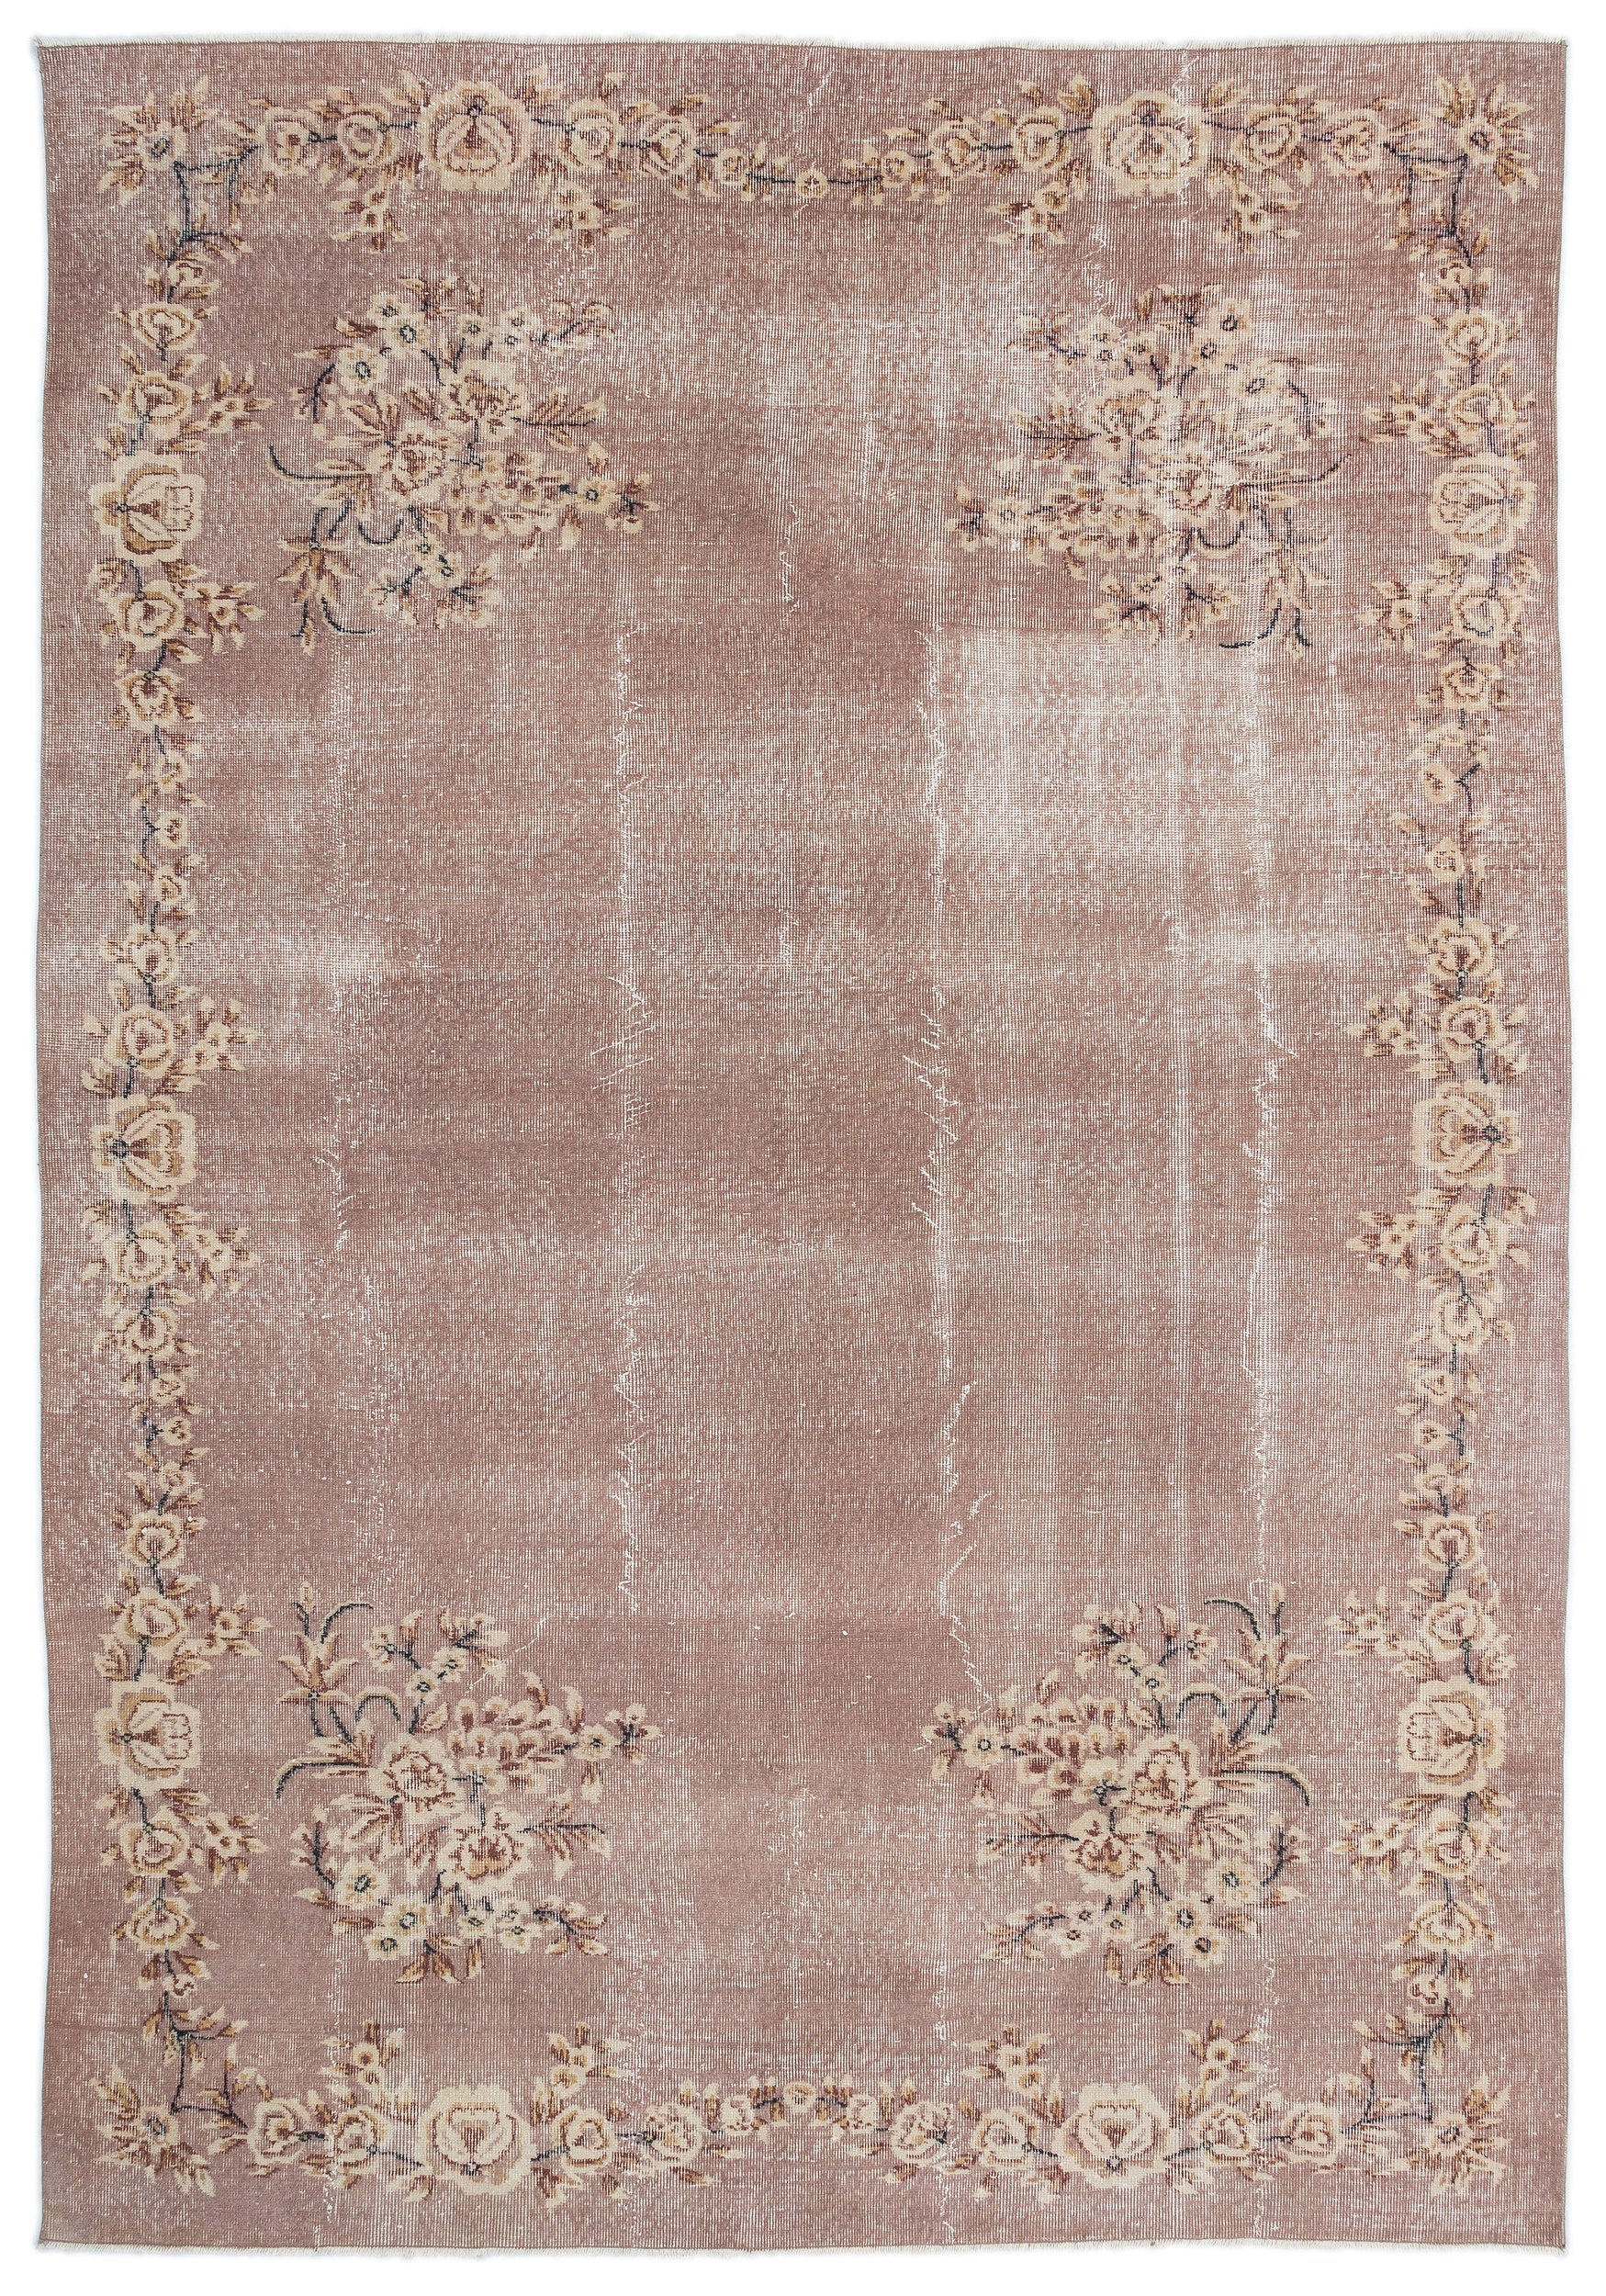 Retro Over Dyed Vintage Rug 6'12'' x 10'4'' ft 213 x 314 cm